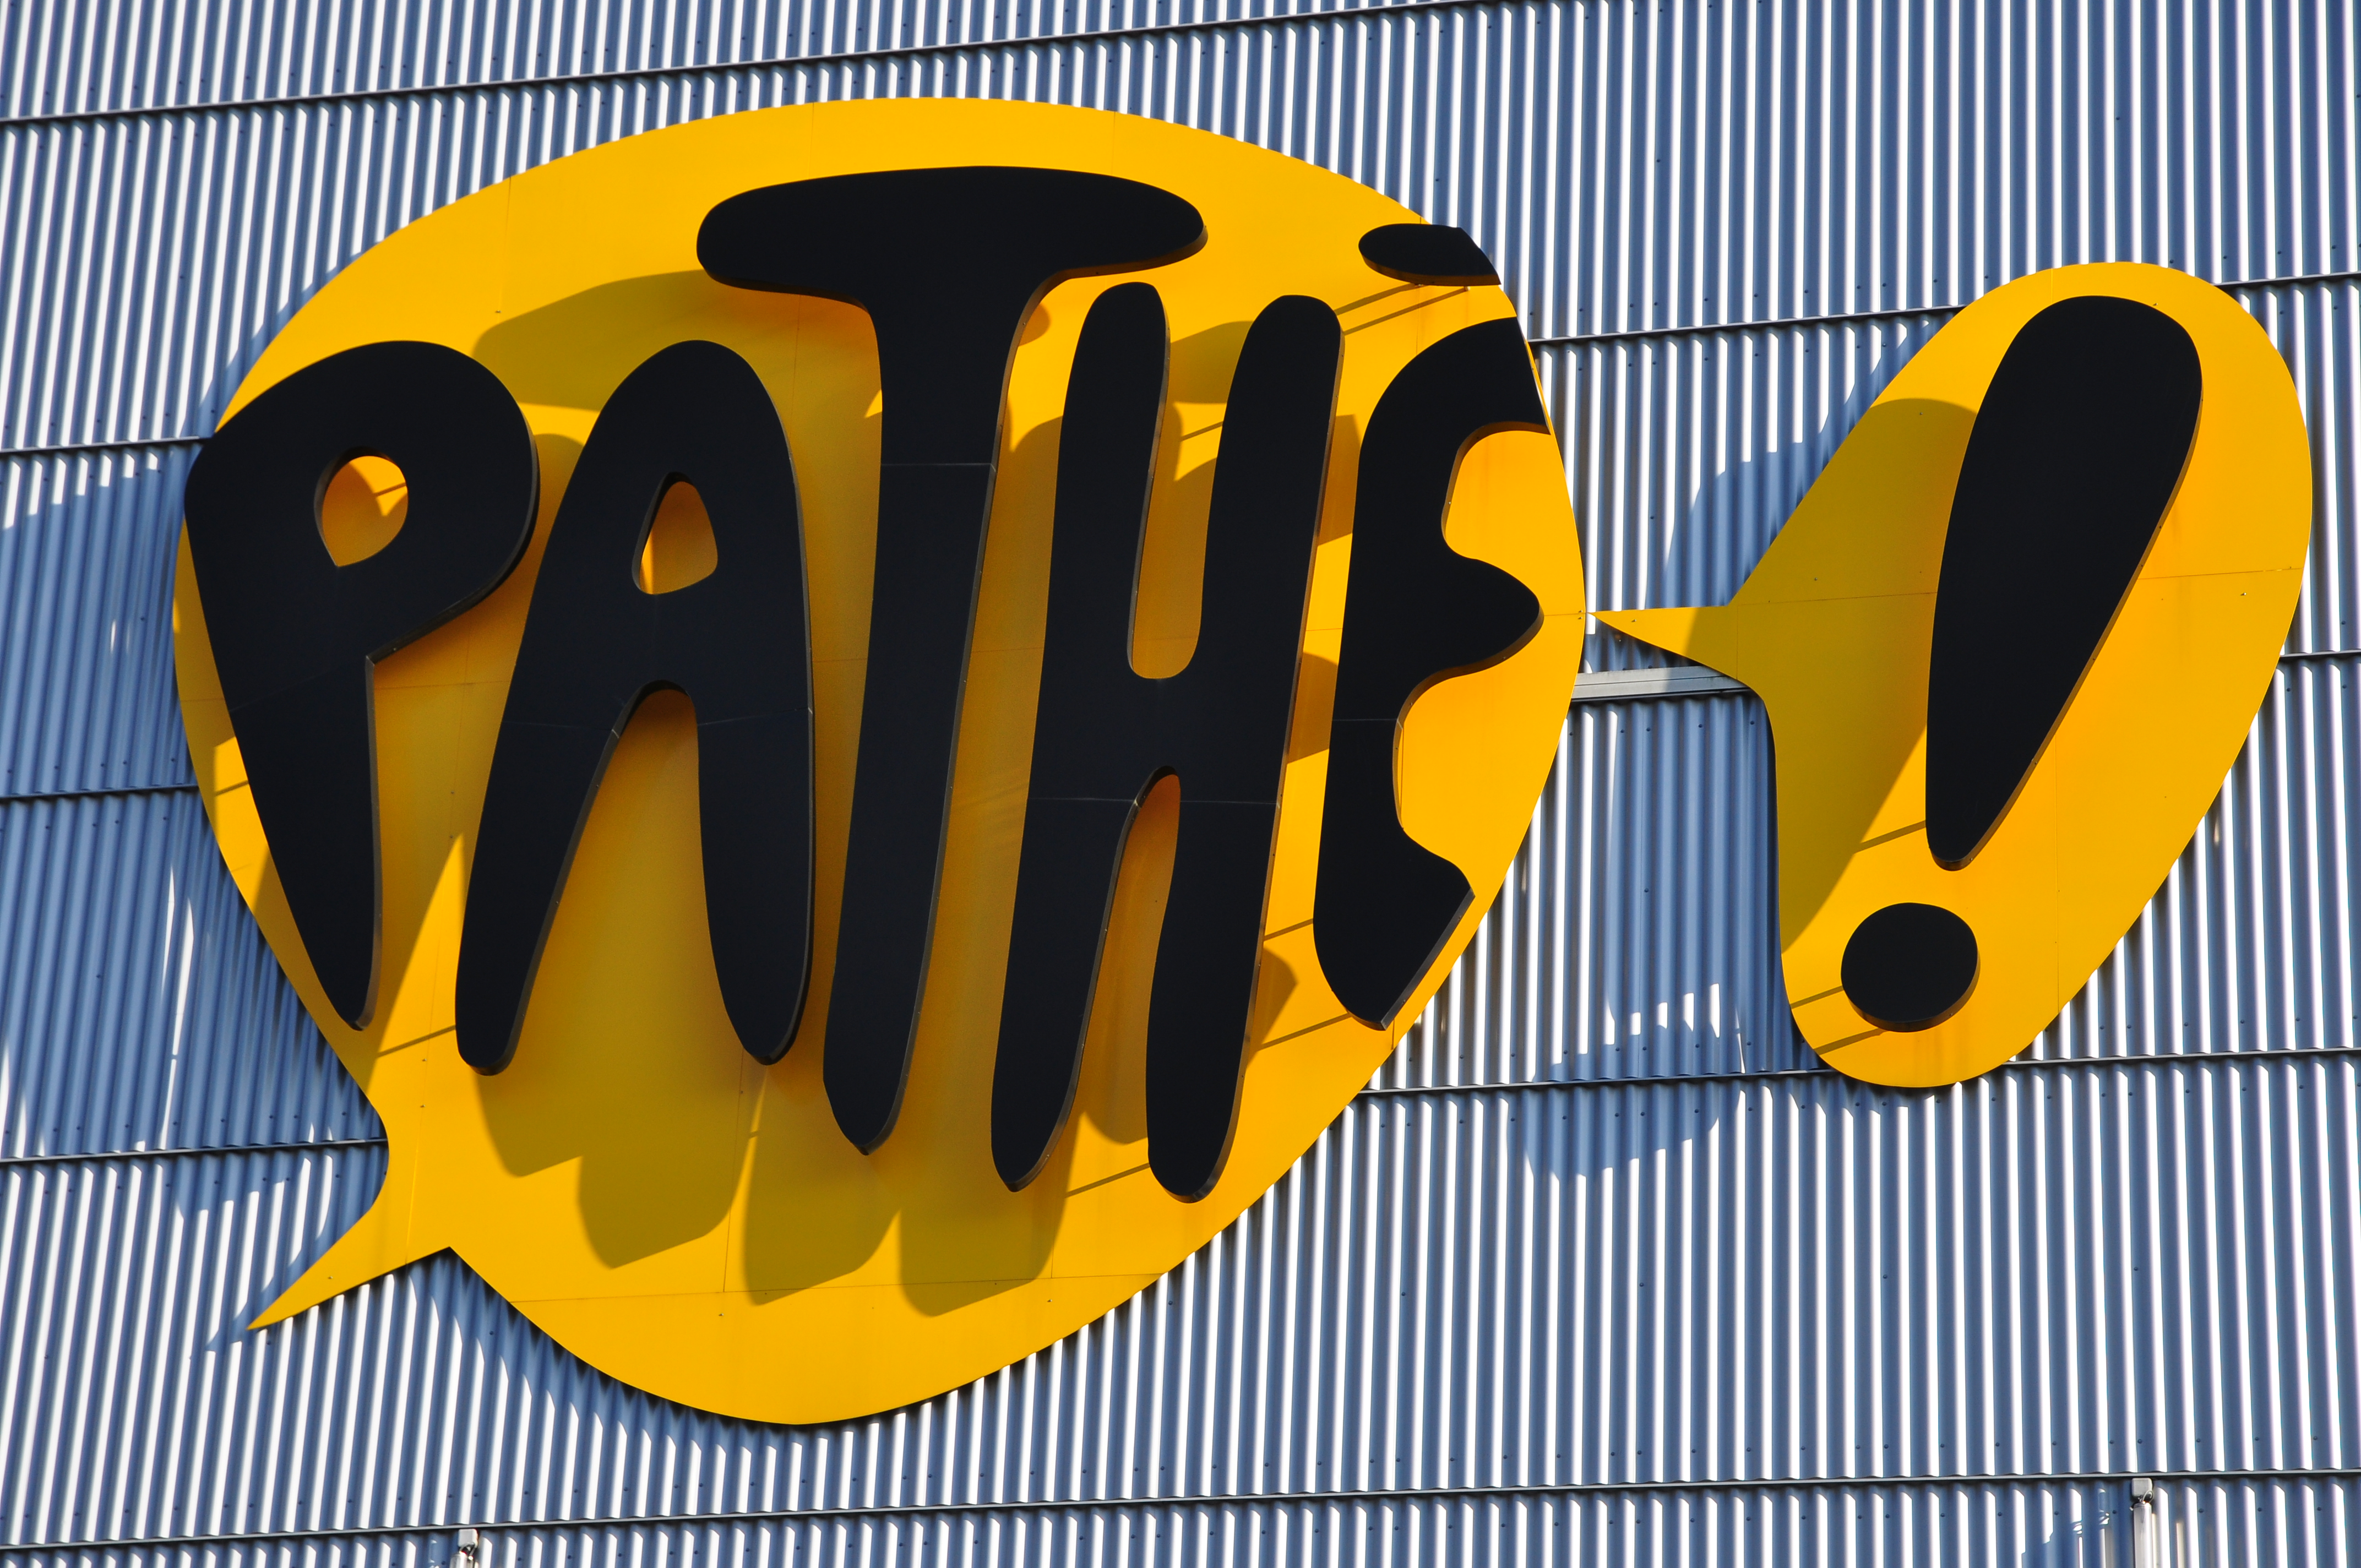 Path.nl The film site for all Welcome to, path, path